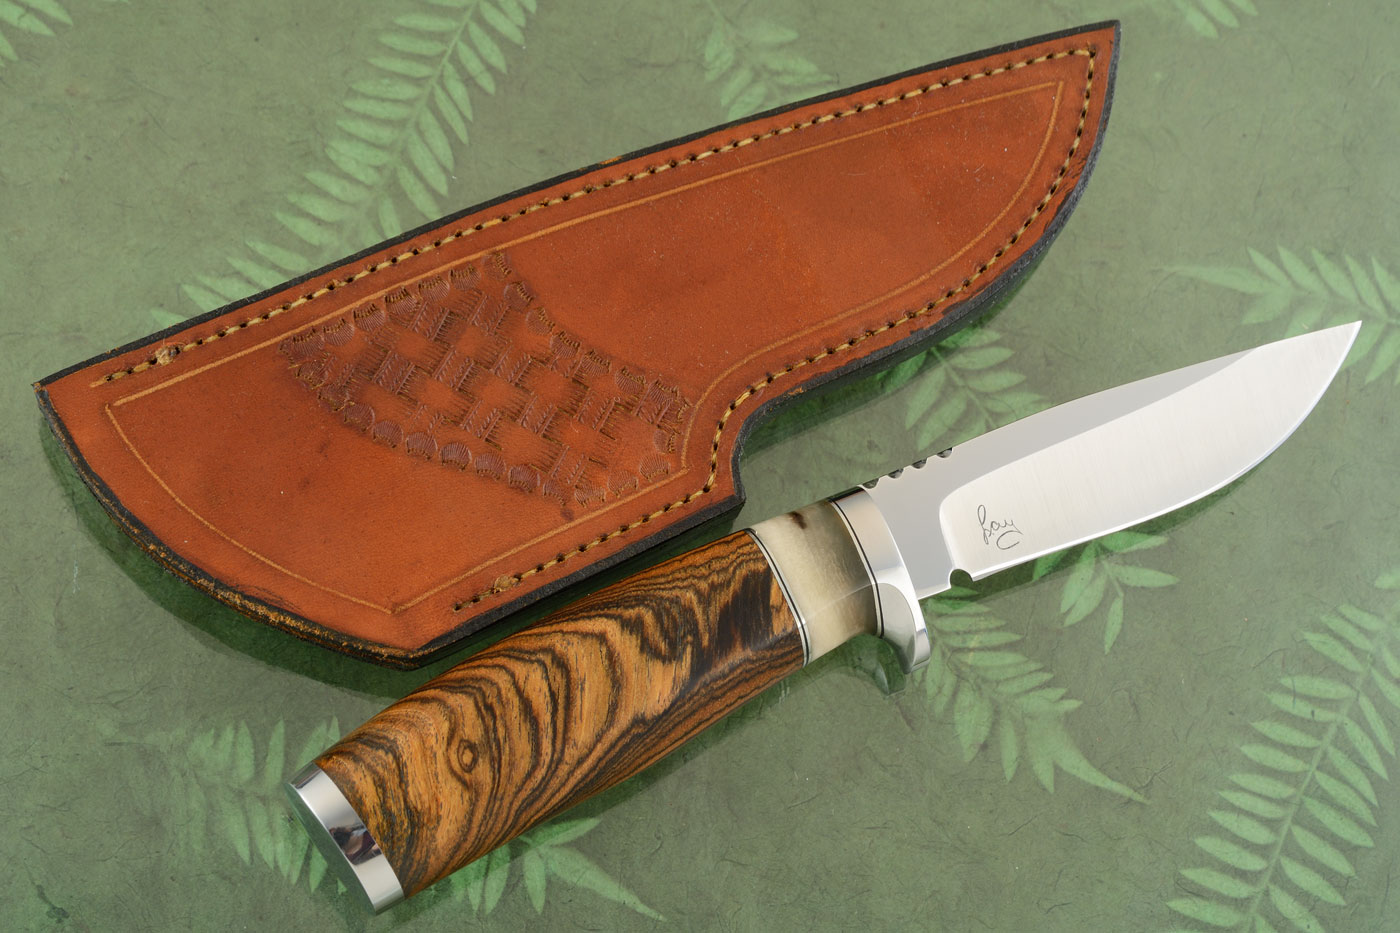 Personal with Bocote and Sheep Horn